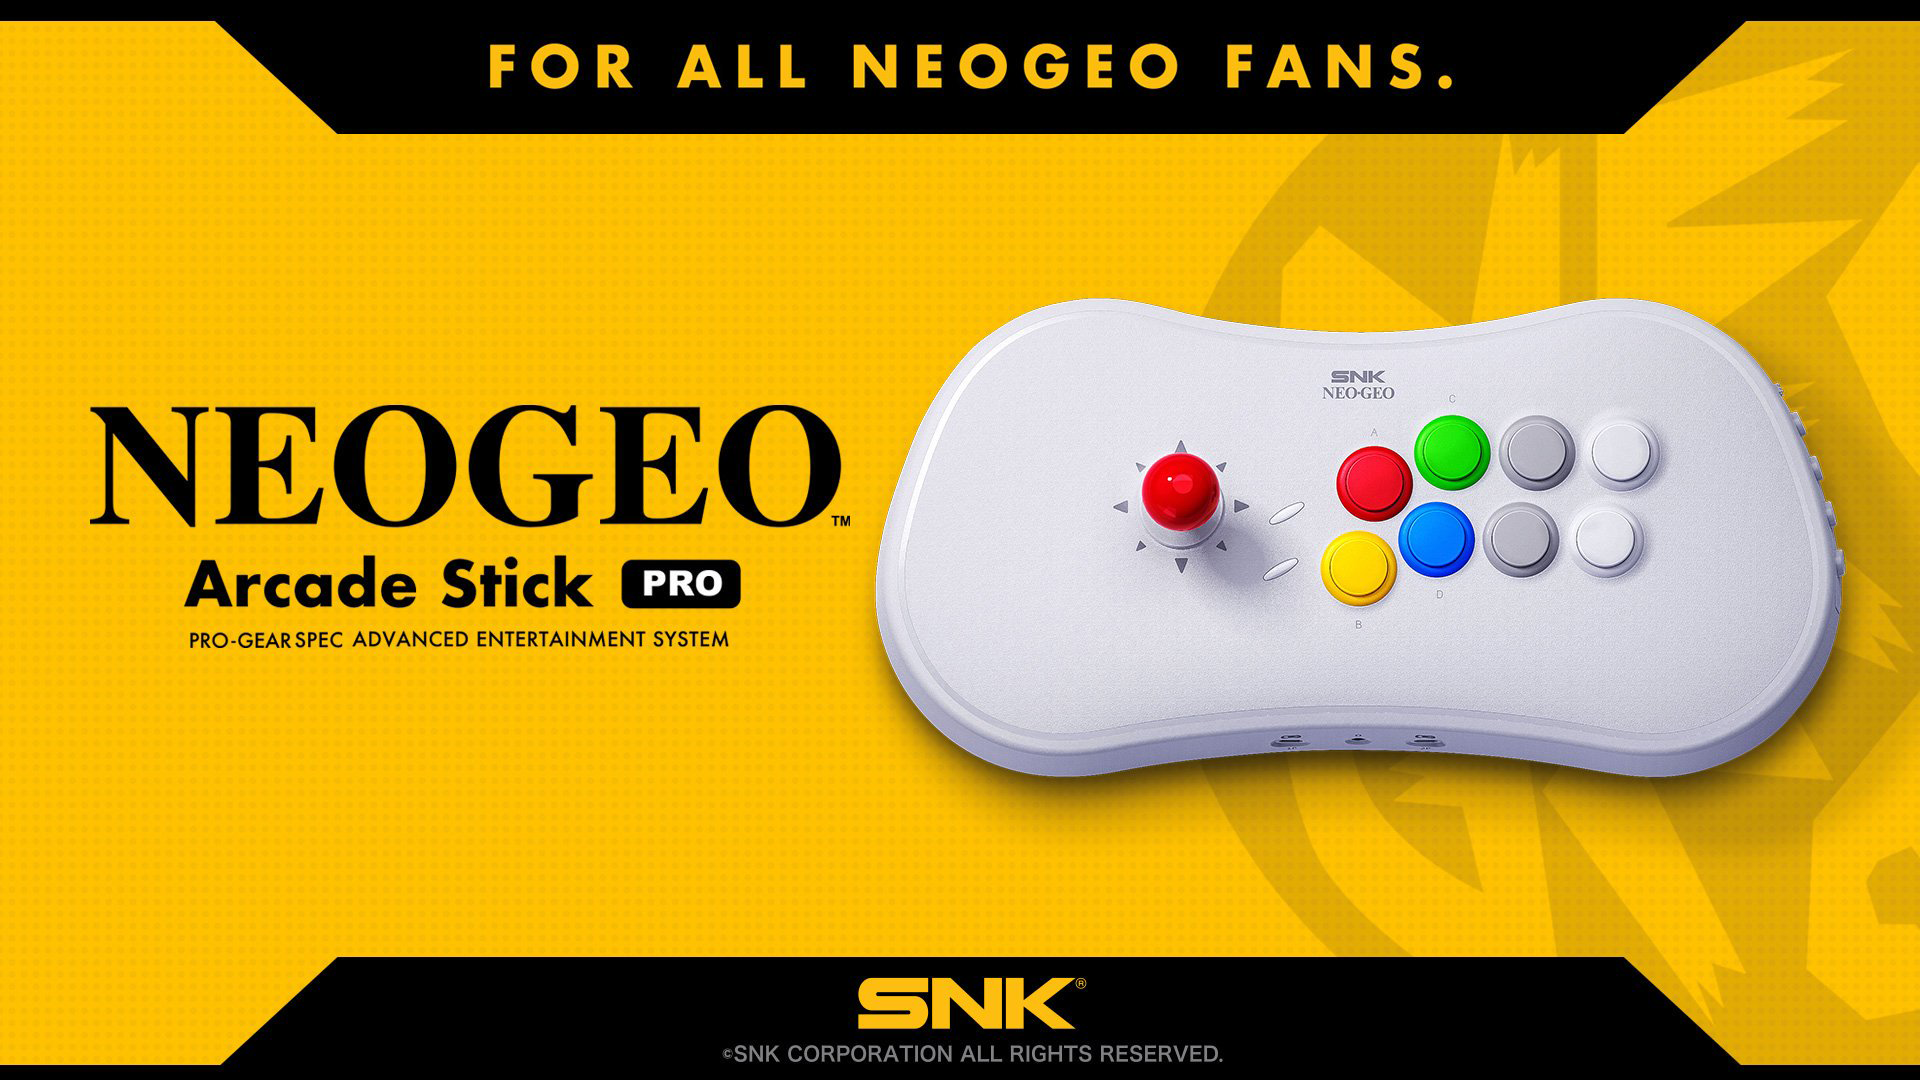 NeoGeo Arcade Stick 1 out of 2 image gallery